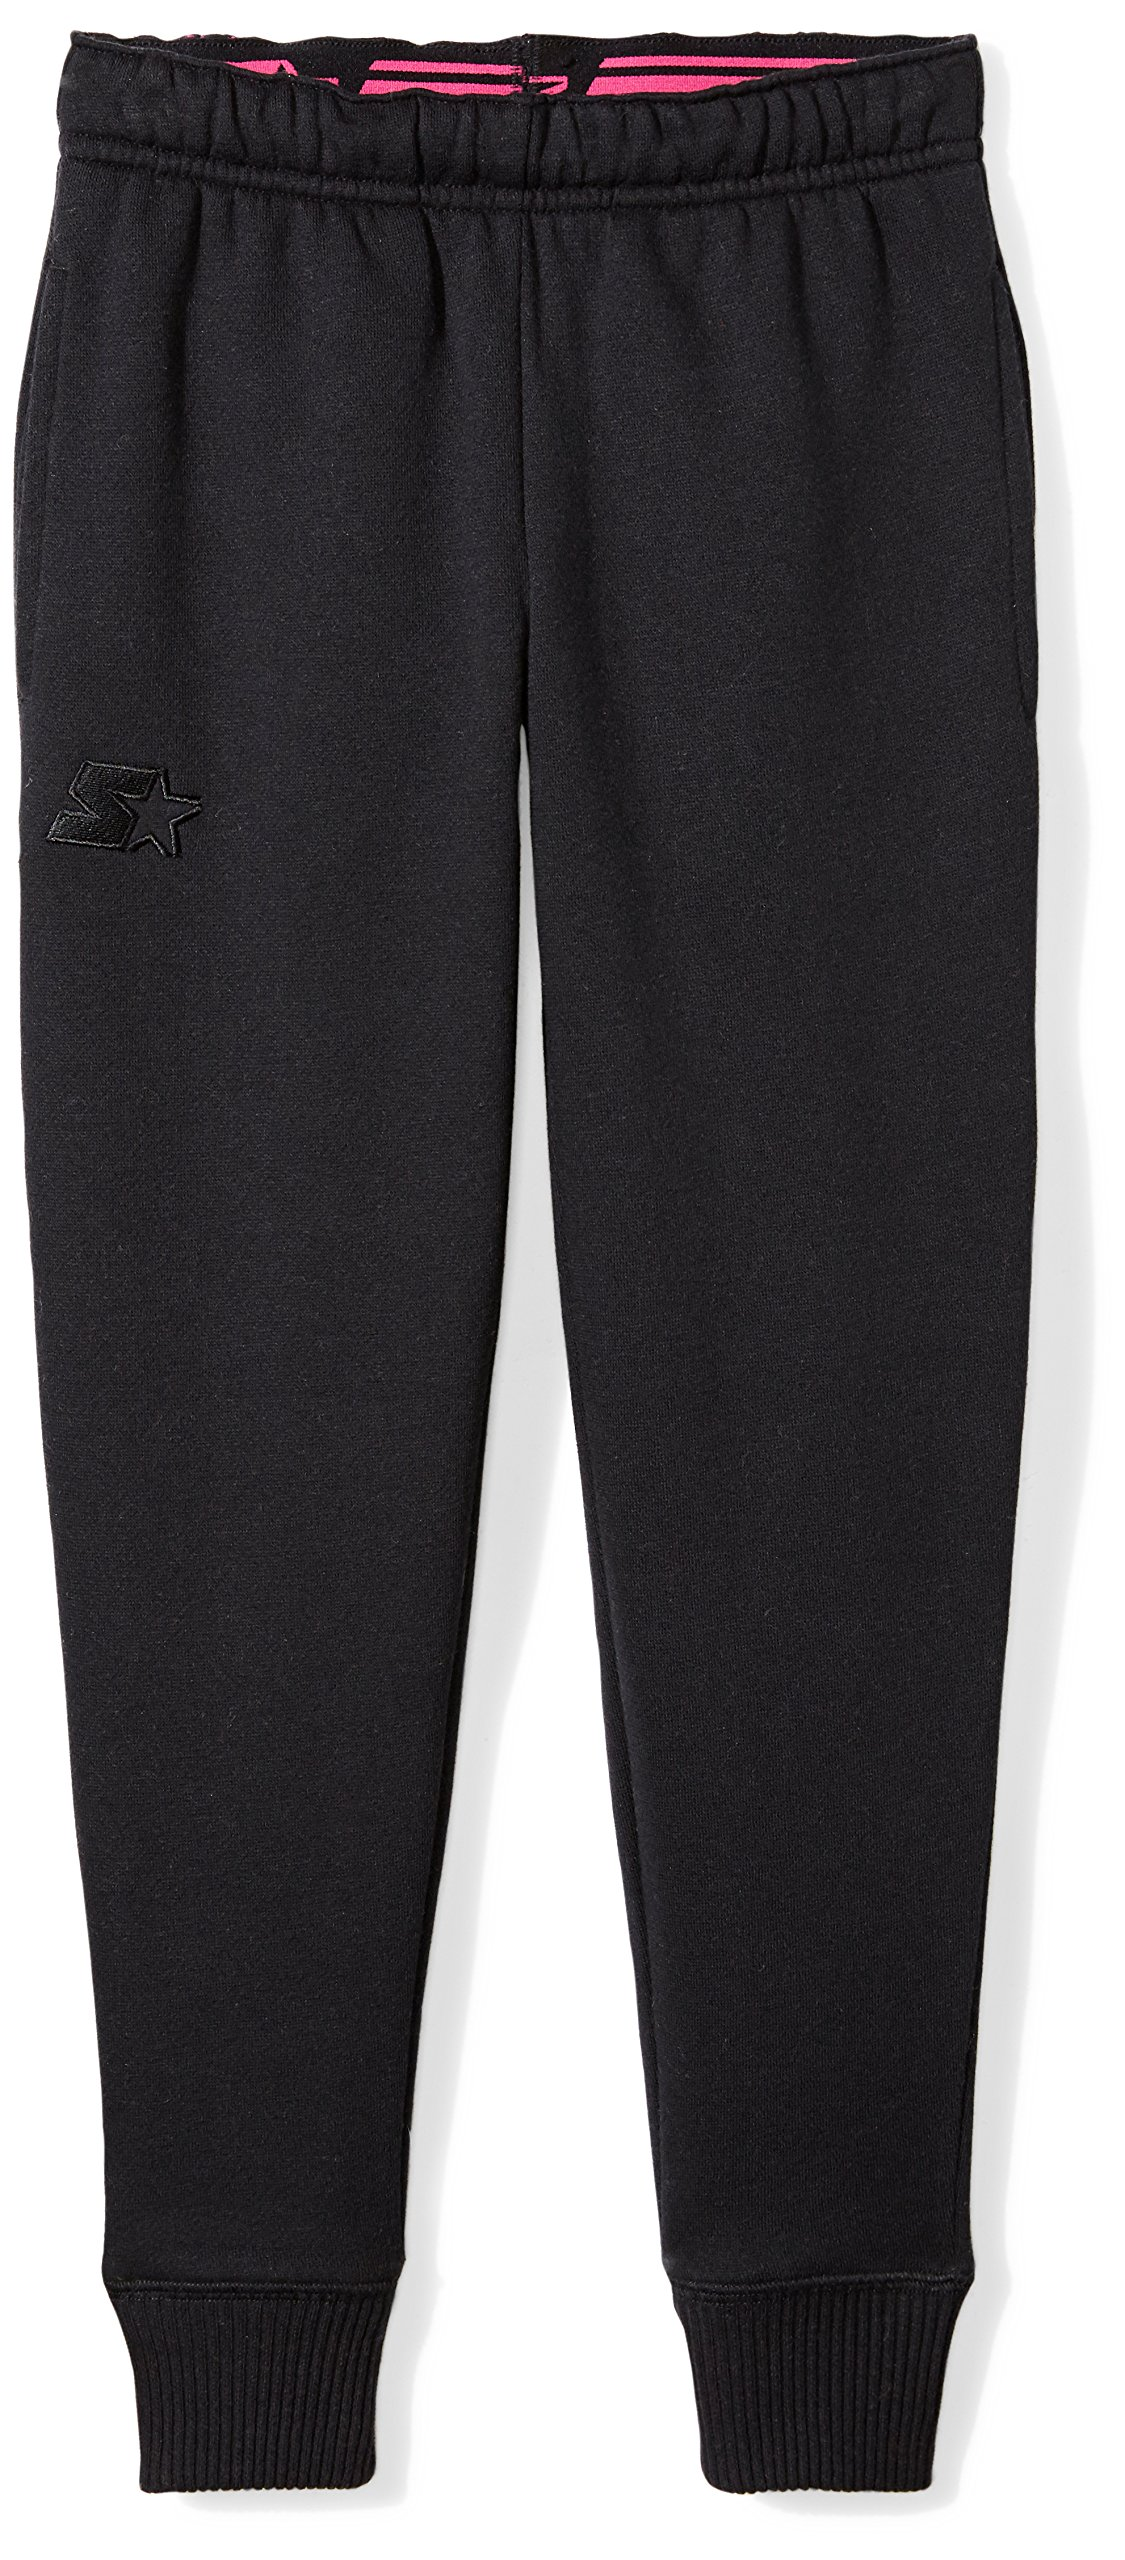 Starter Girls' Jogger Sweatpants with Pockets, Prime Exclusive, Black with Embroidered Logo, XL (14/16)